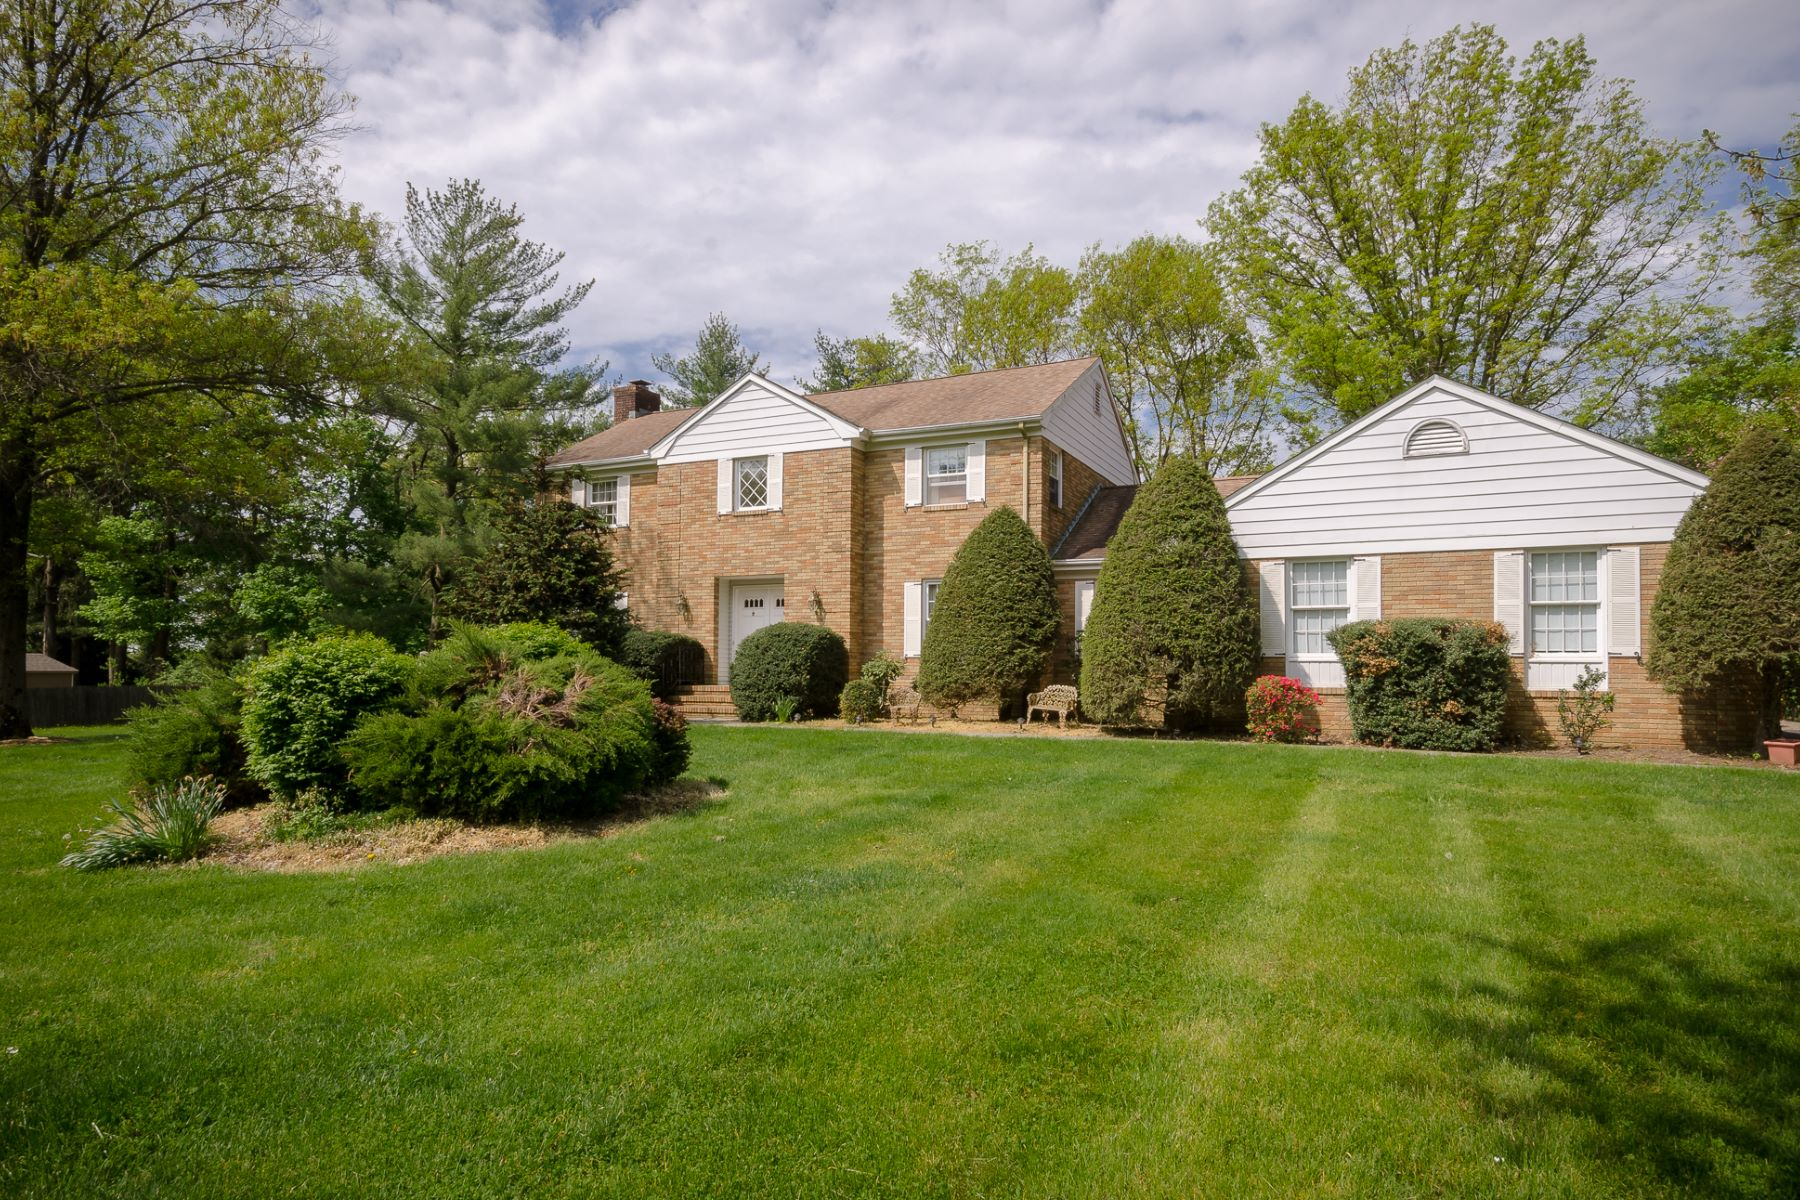 Property for Sale at So Many Ways to Live the Good Life 71 Carter Road, Princeton, New Jersey 08540 United States